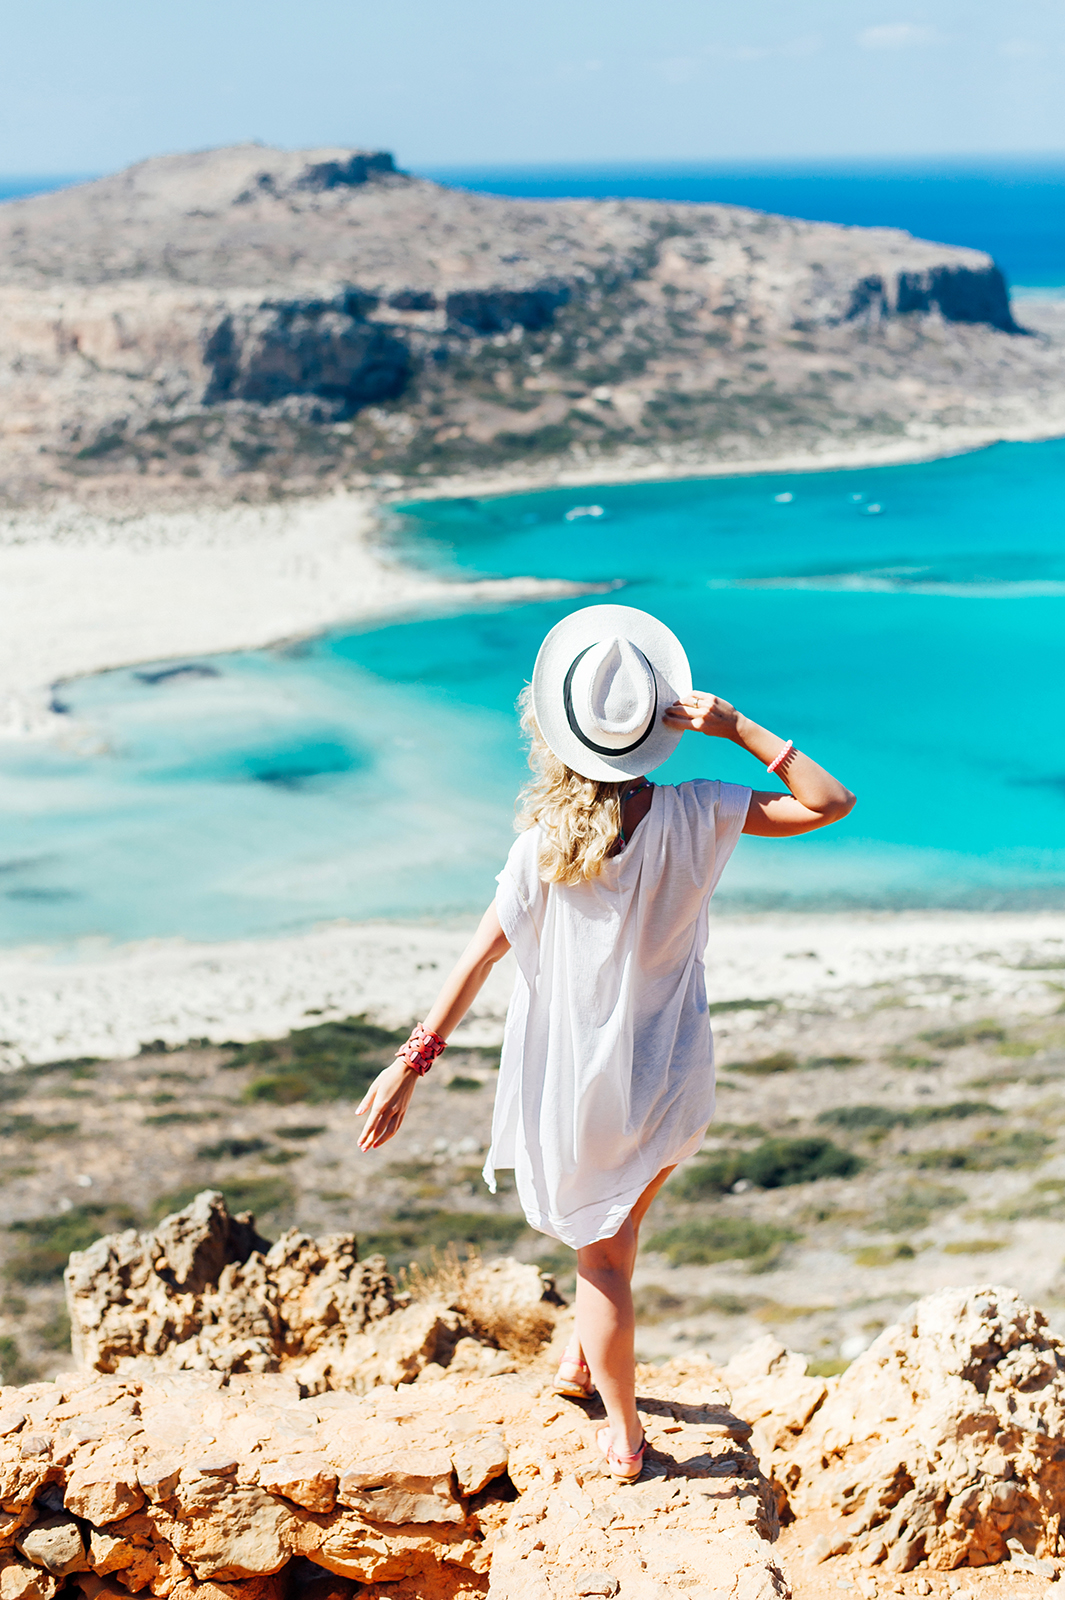 margarita_maslova_ritalifestyle_balos_lagoon_greece_travel_blog_crete